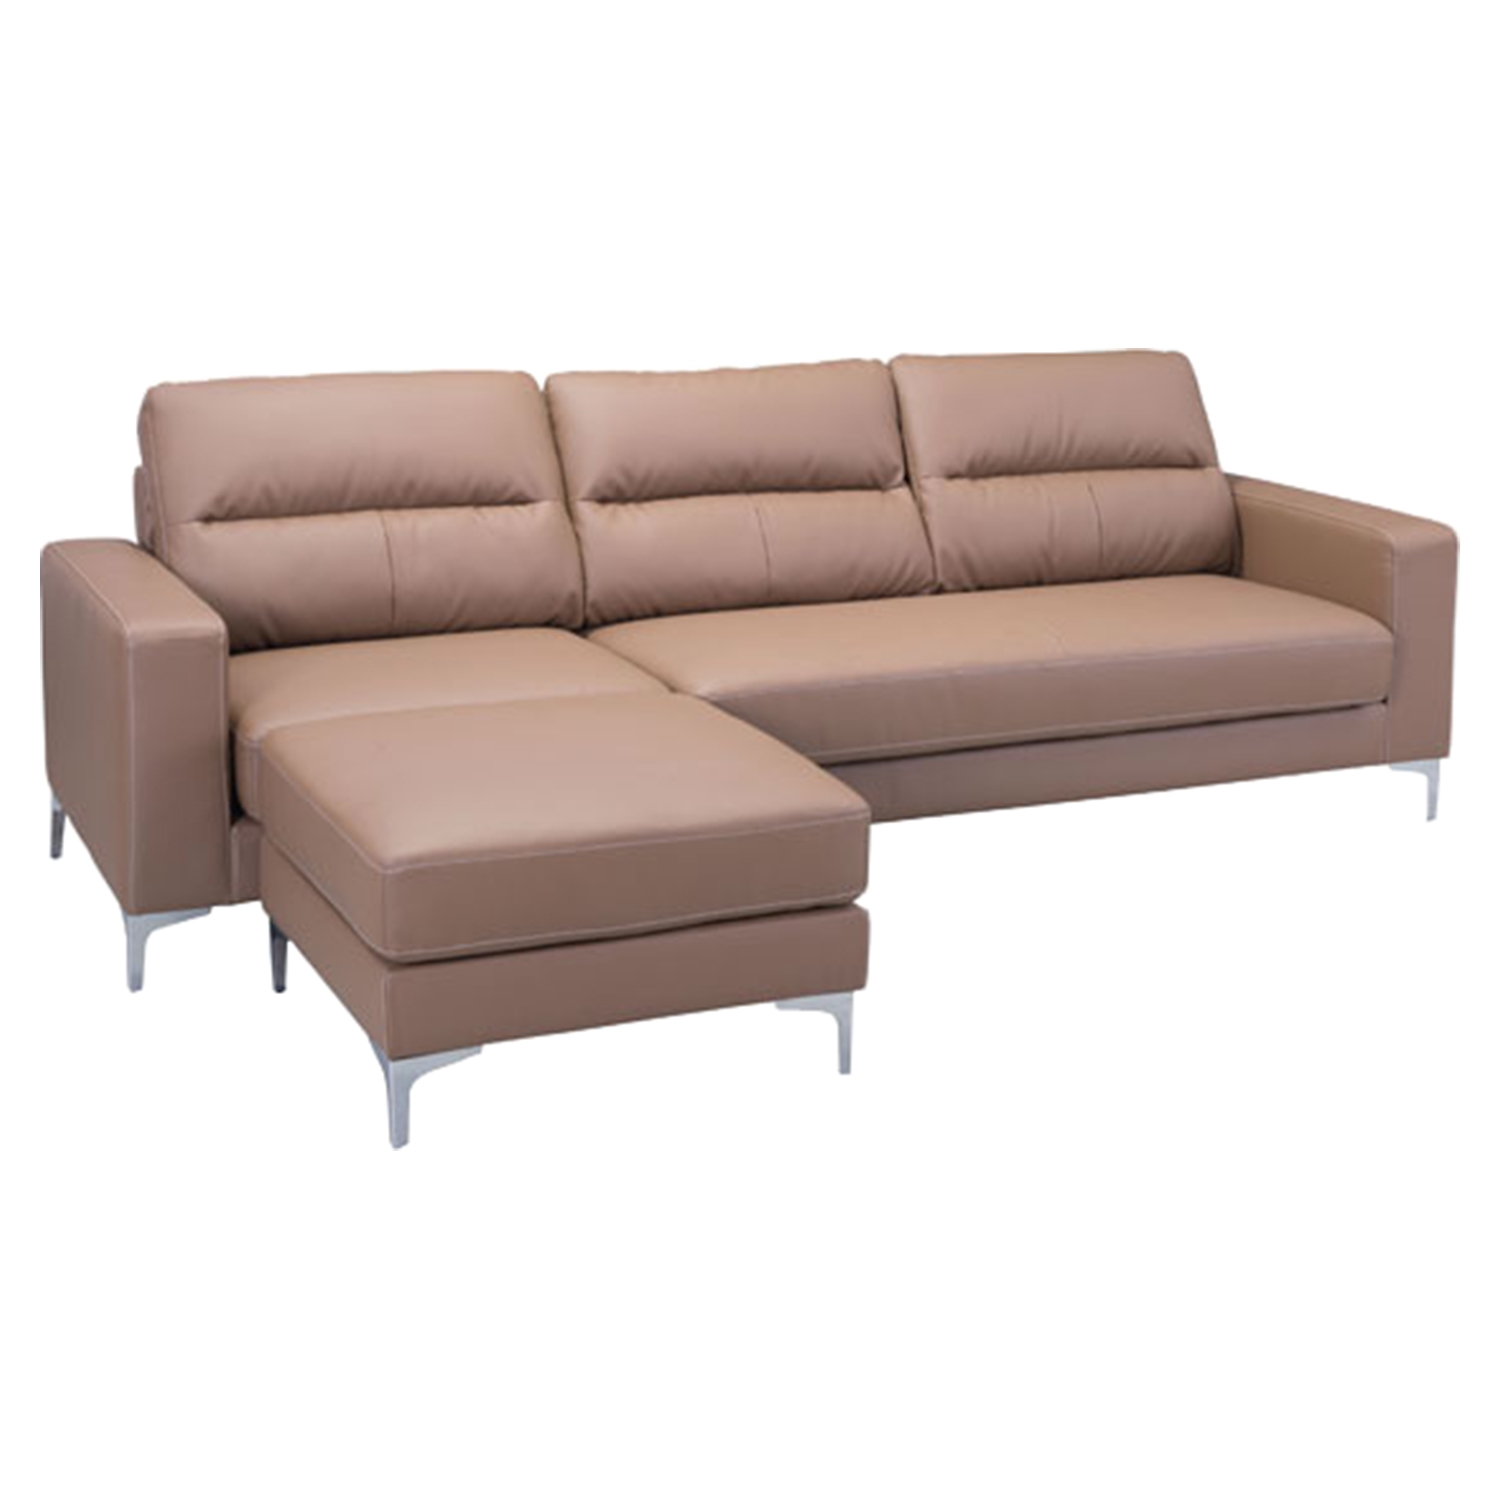 Versa Sectional - Brown - ZM-100231